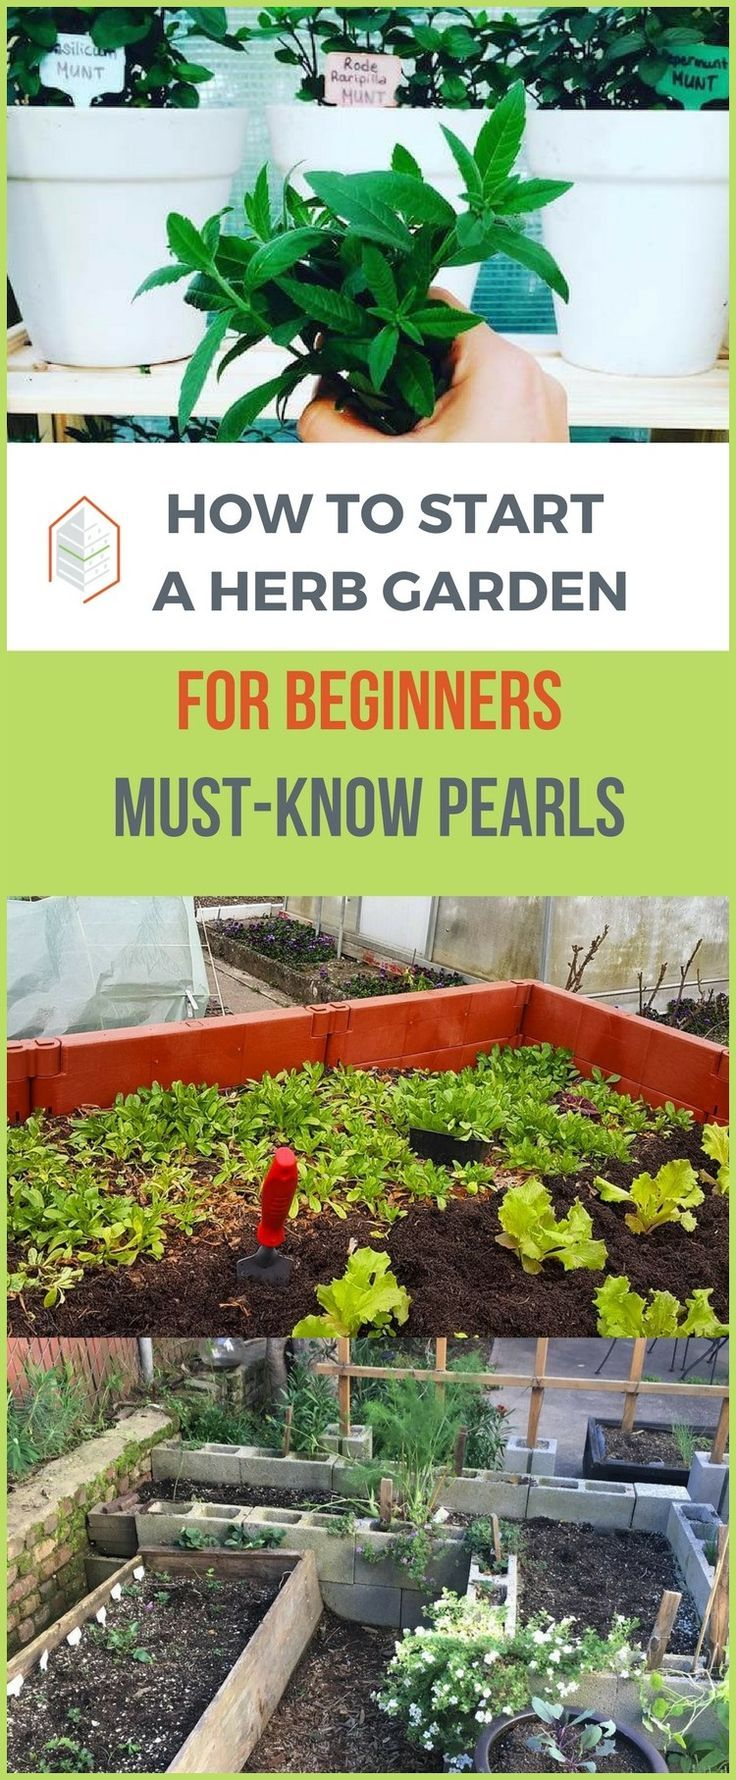 How To Start An Herb Garden For Beginners: Must Know Pearls. How To